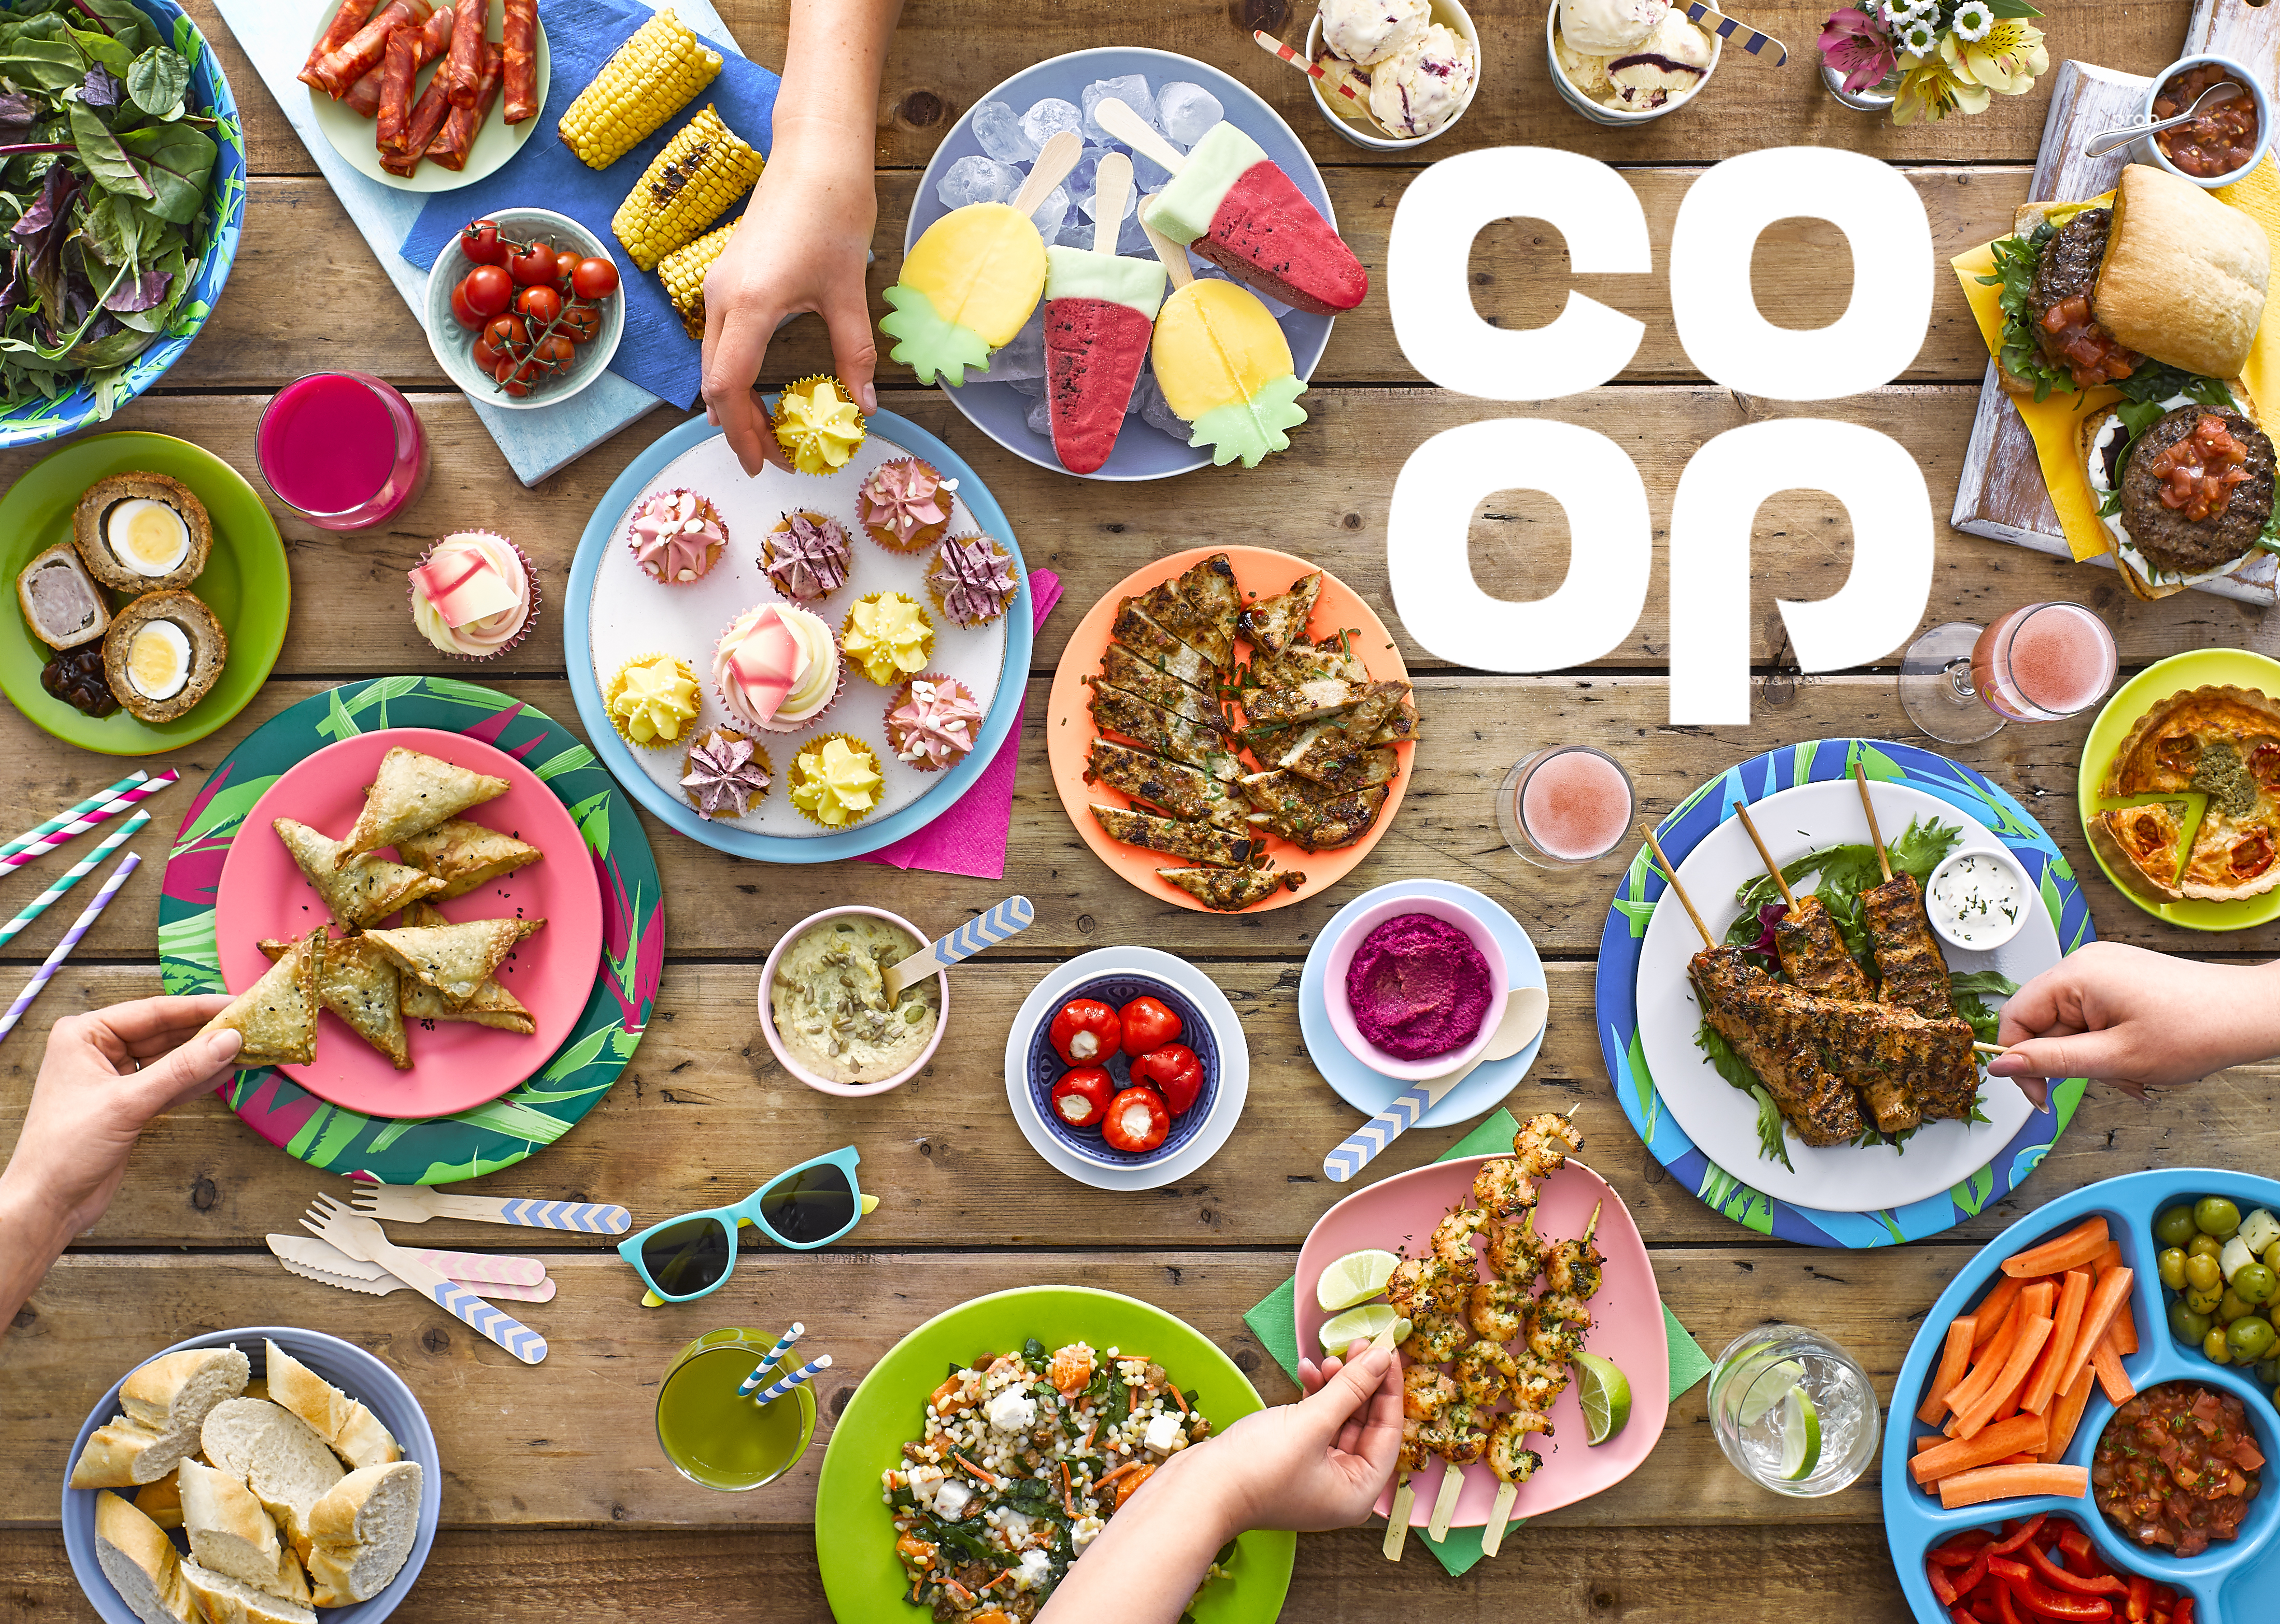 Co-op Foods Summer Press pack